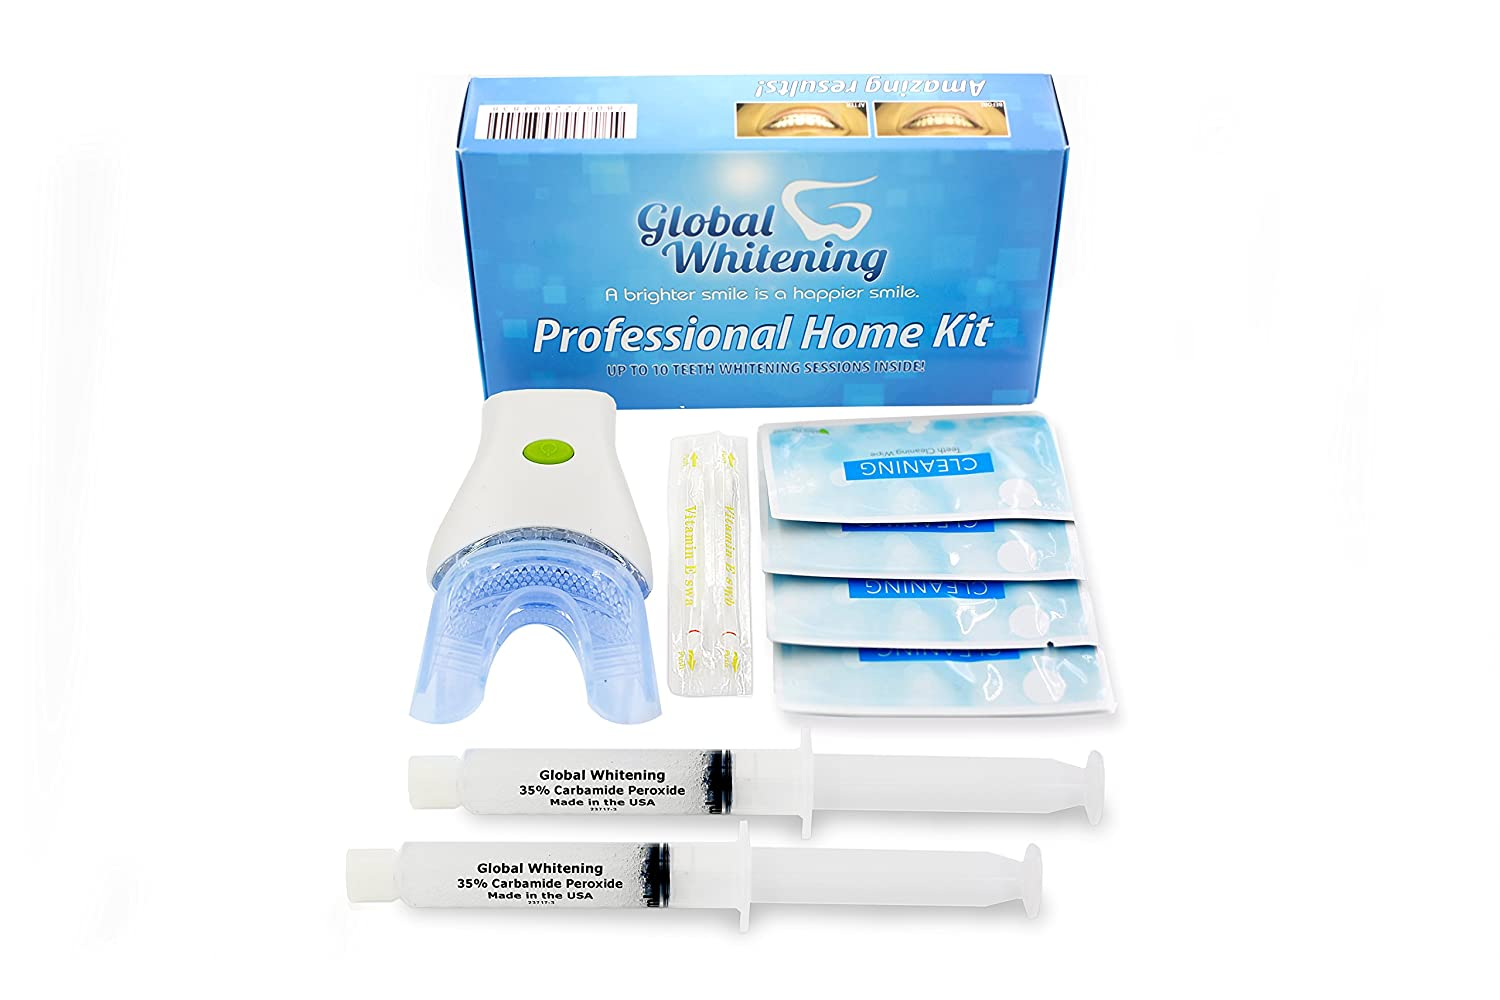 Global Whitening - Professional Teeth Whitening System Kit W/ 7 LED Blue Light Vibrating Brushing System - 35% Carbamide Peroxide - Made in USA